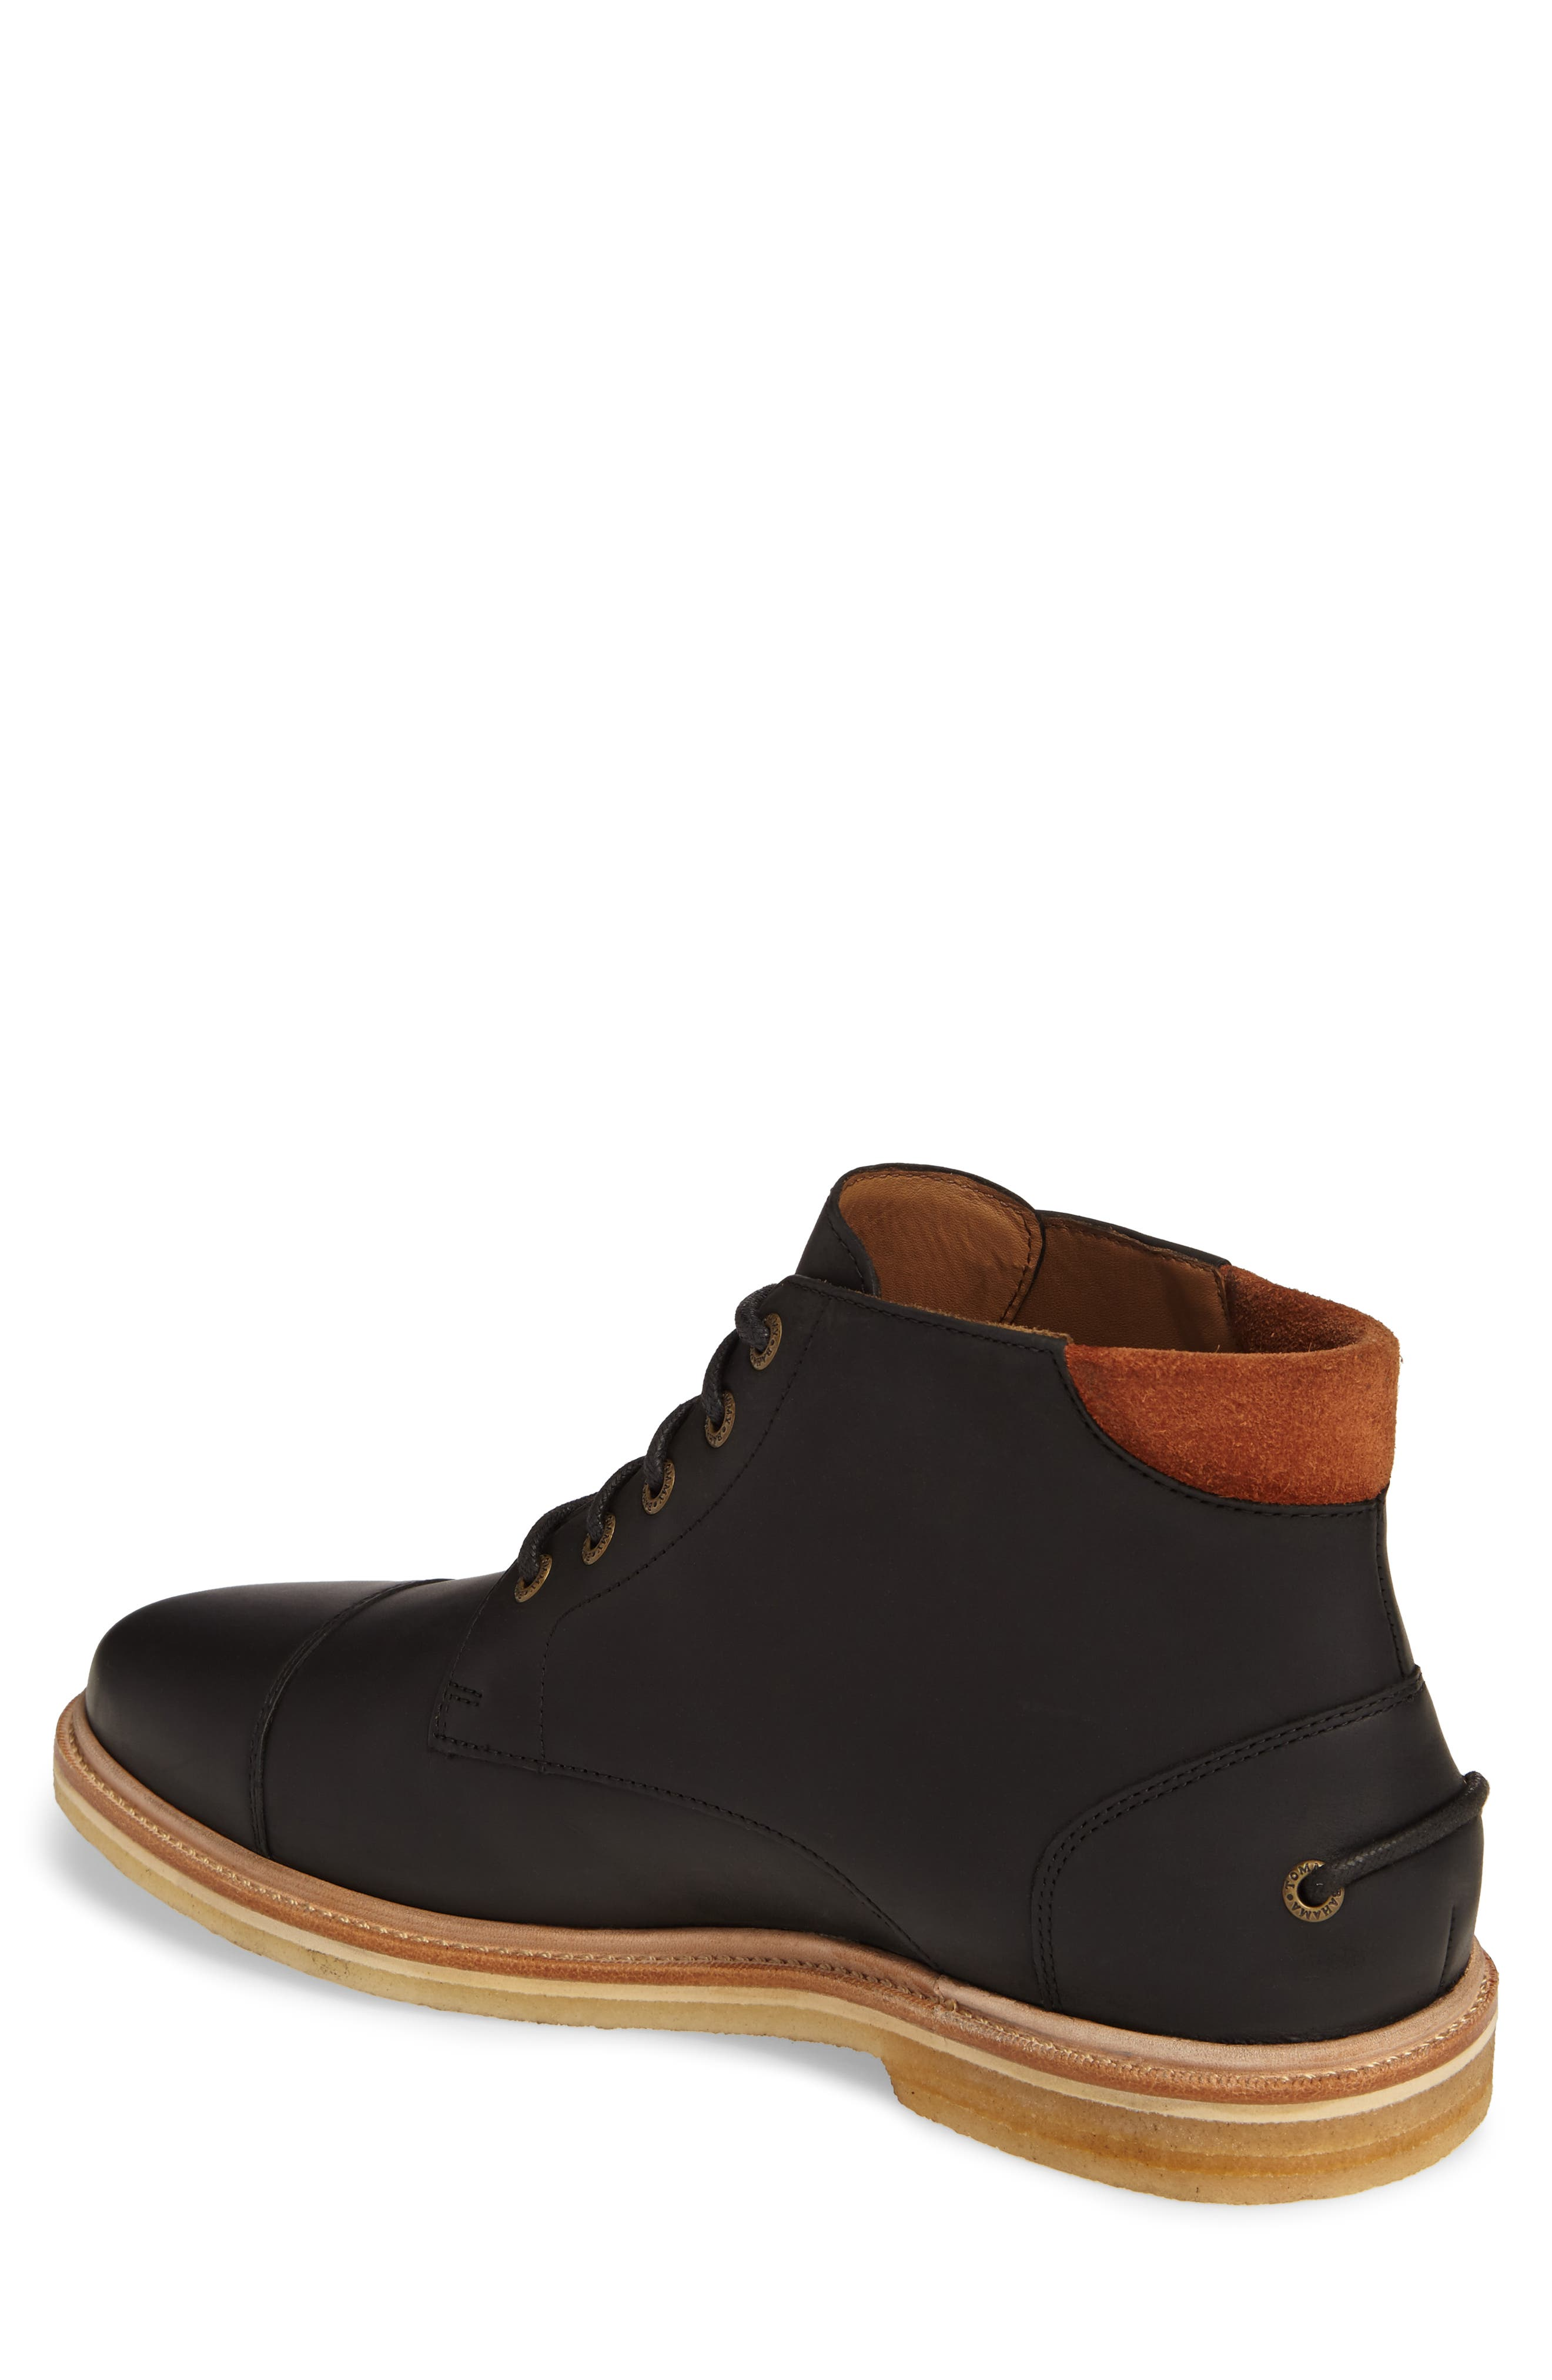 Argon Blooms Cap Toe Boot,                             Alternate thumbnail 2, color,                             001